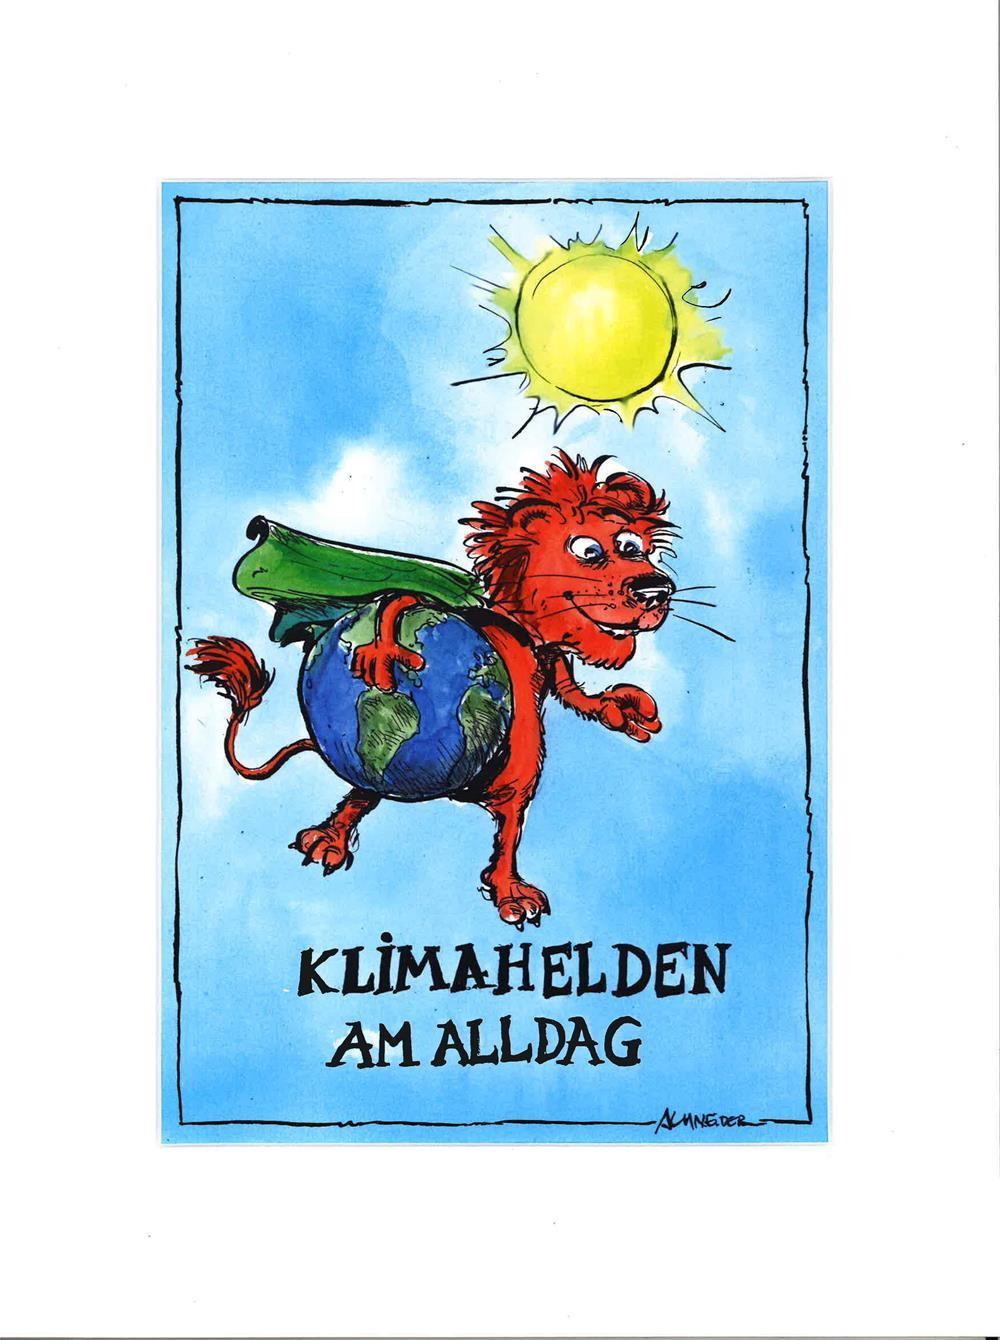 Klimahelden am Alldag